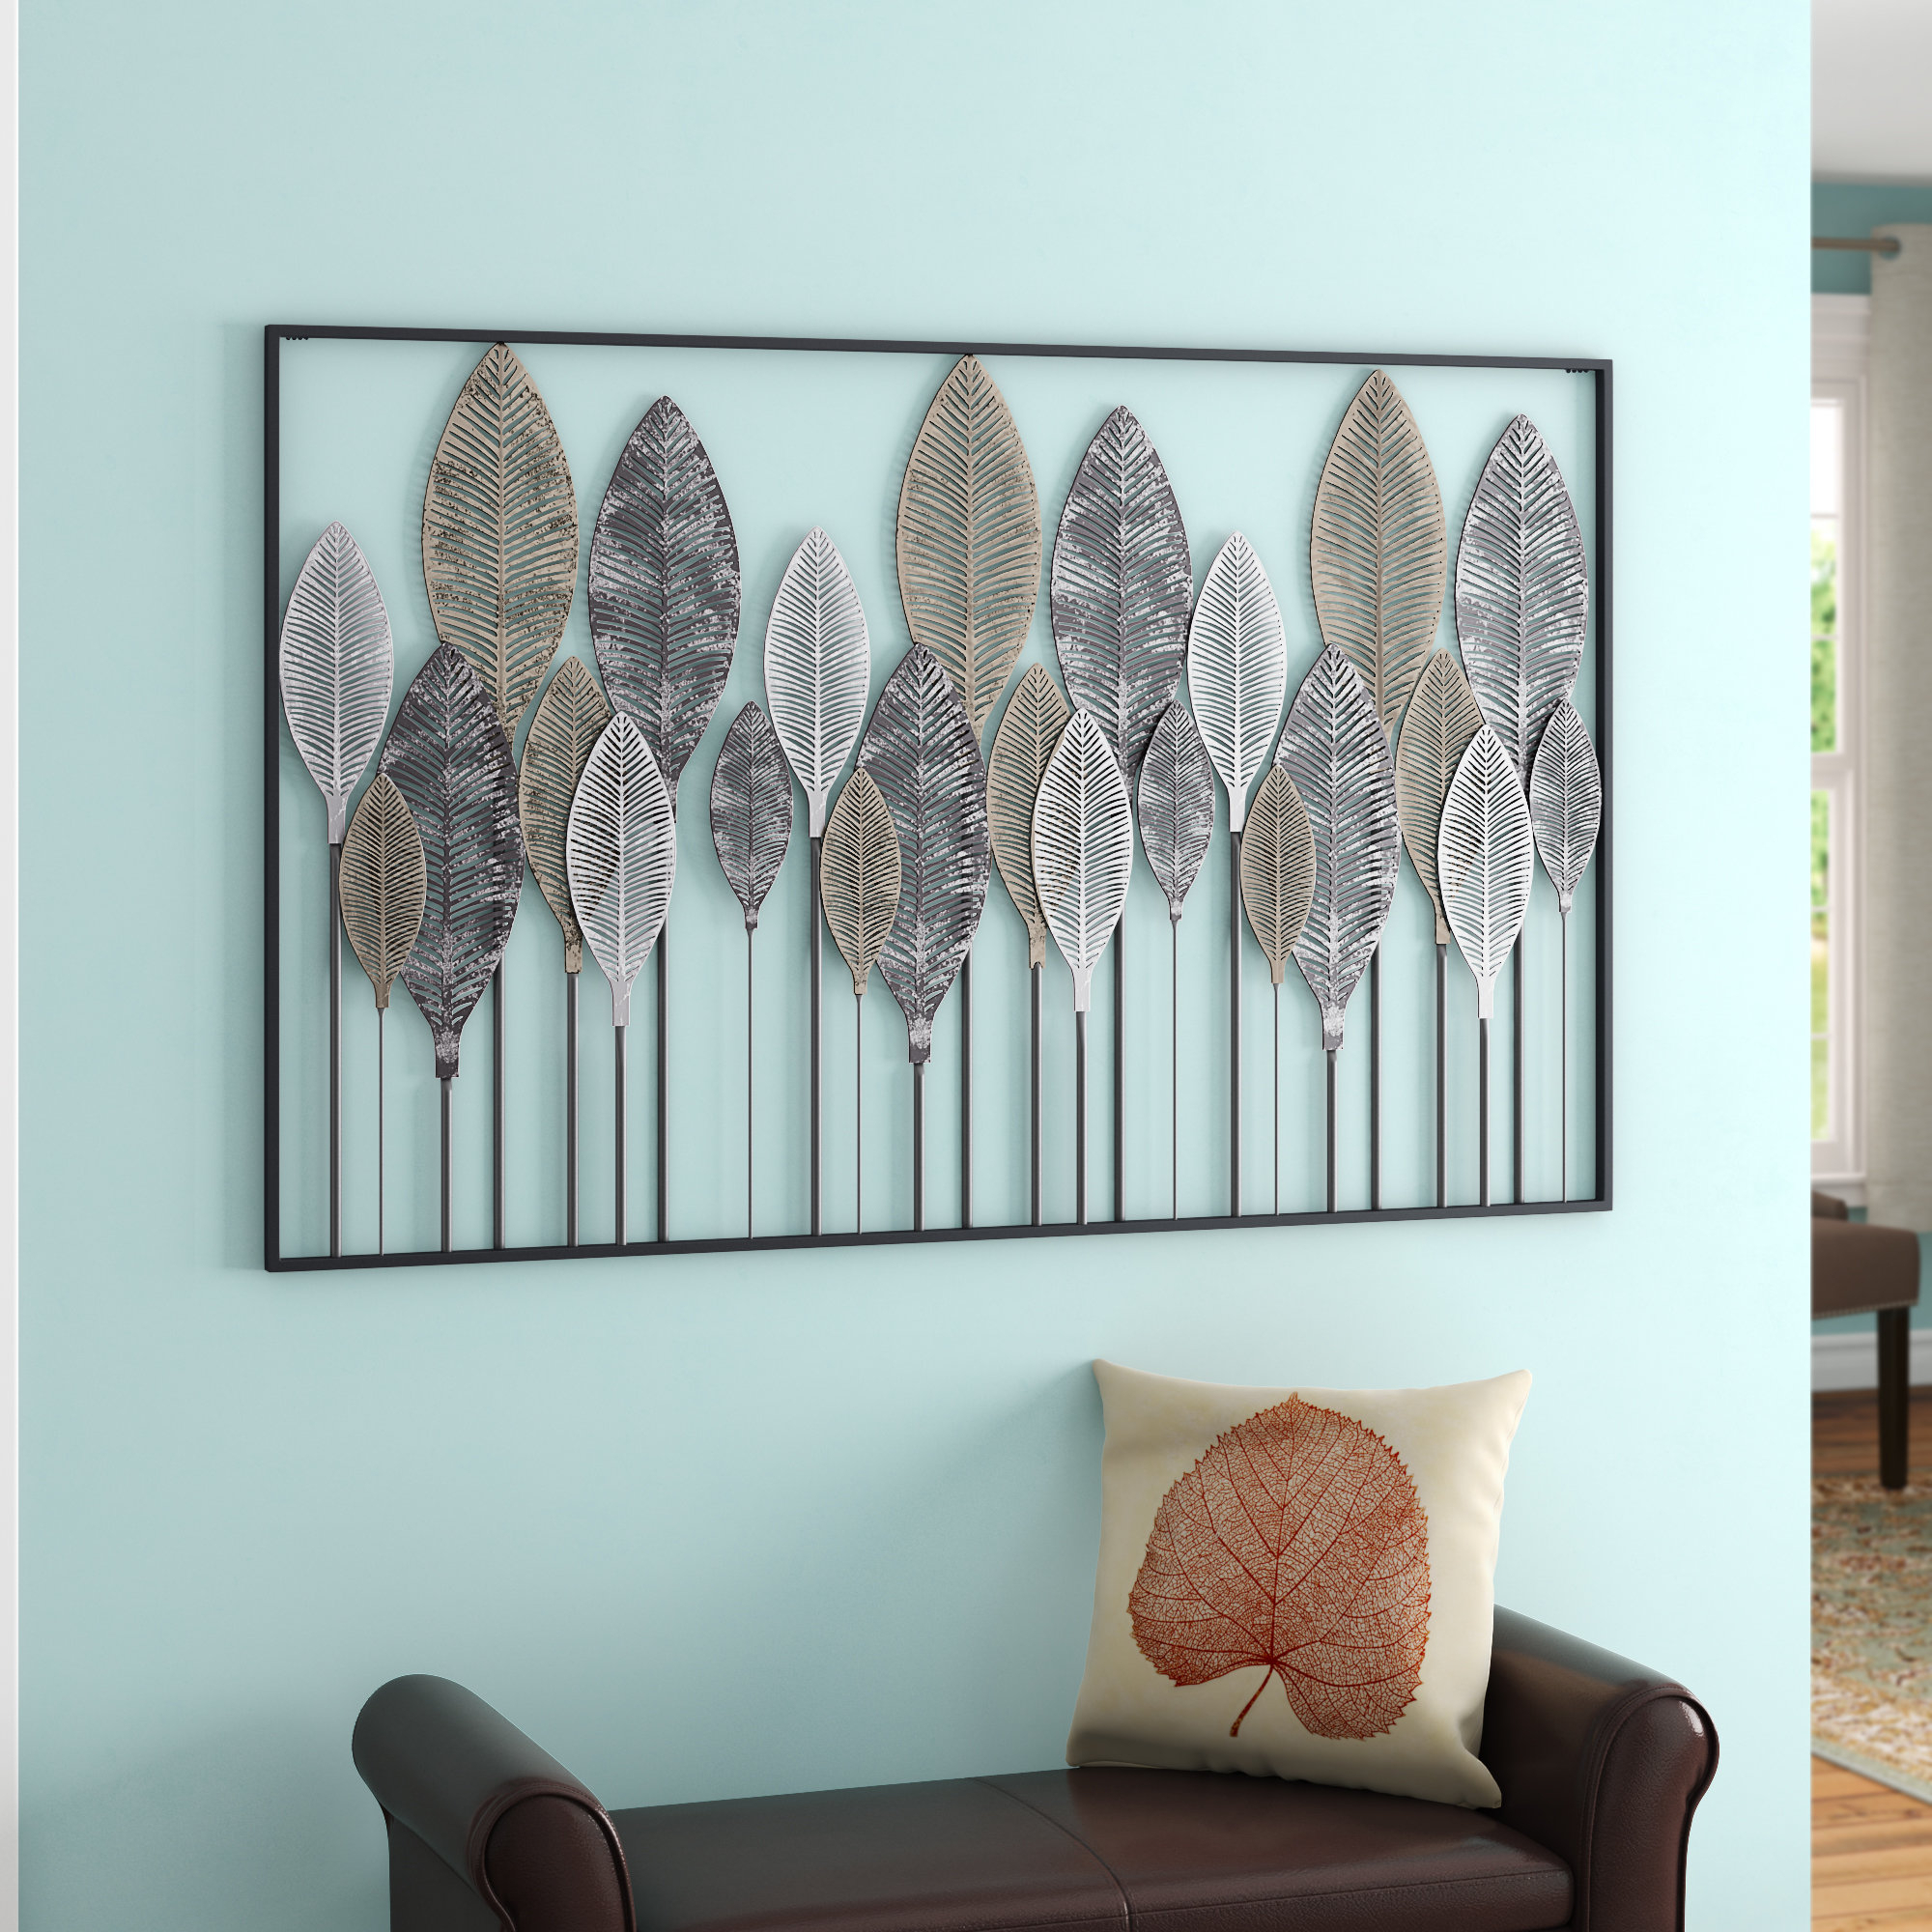 Metal Leaf Wall Décor Within Desford Leaf Wall Decor (View 17 of 30)